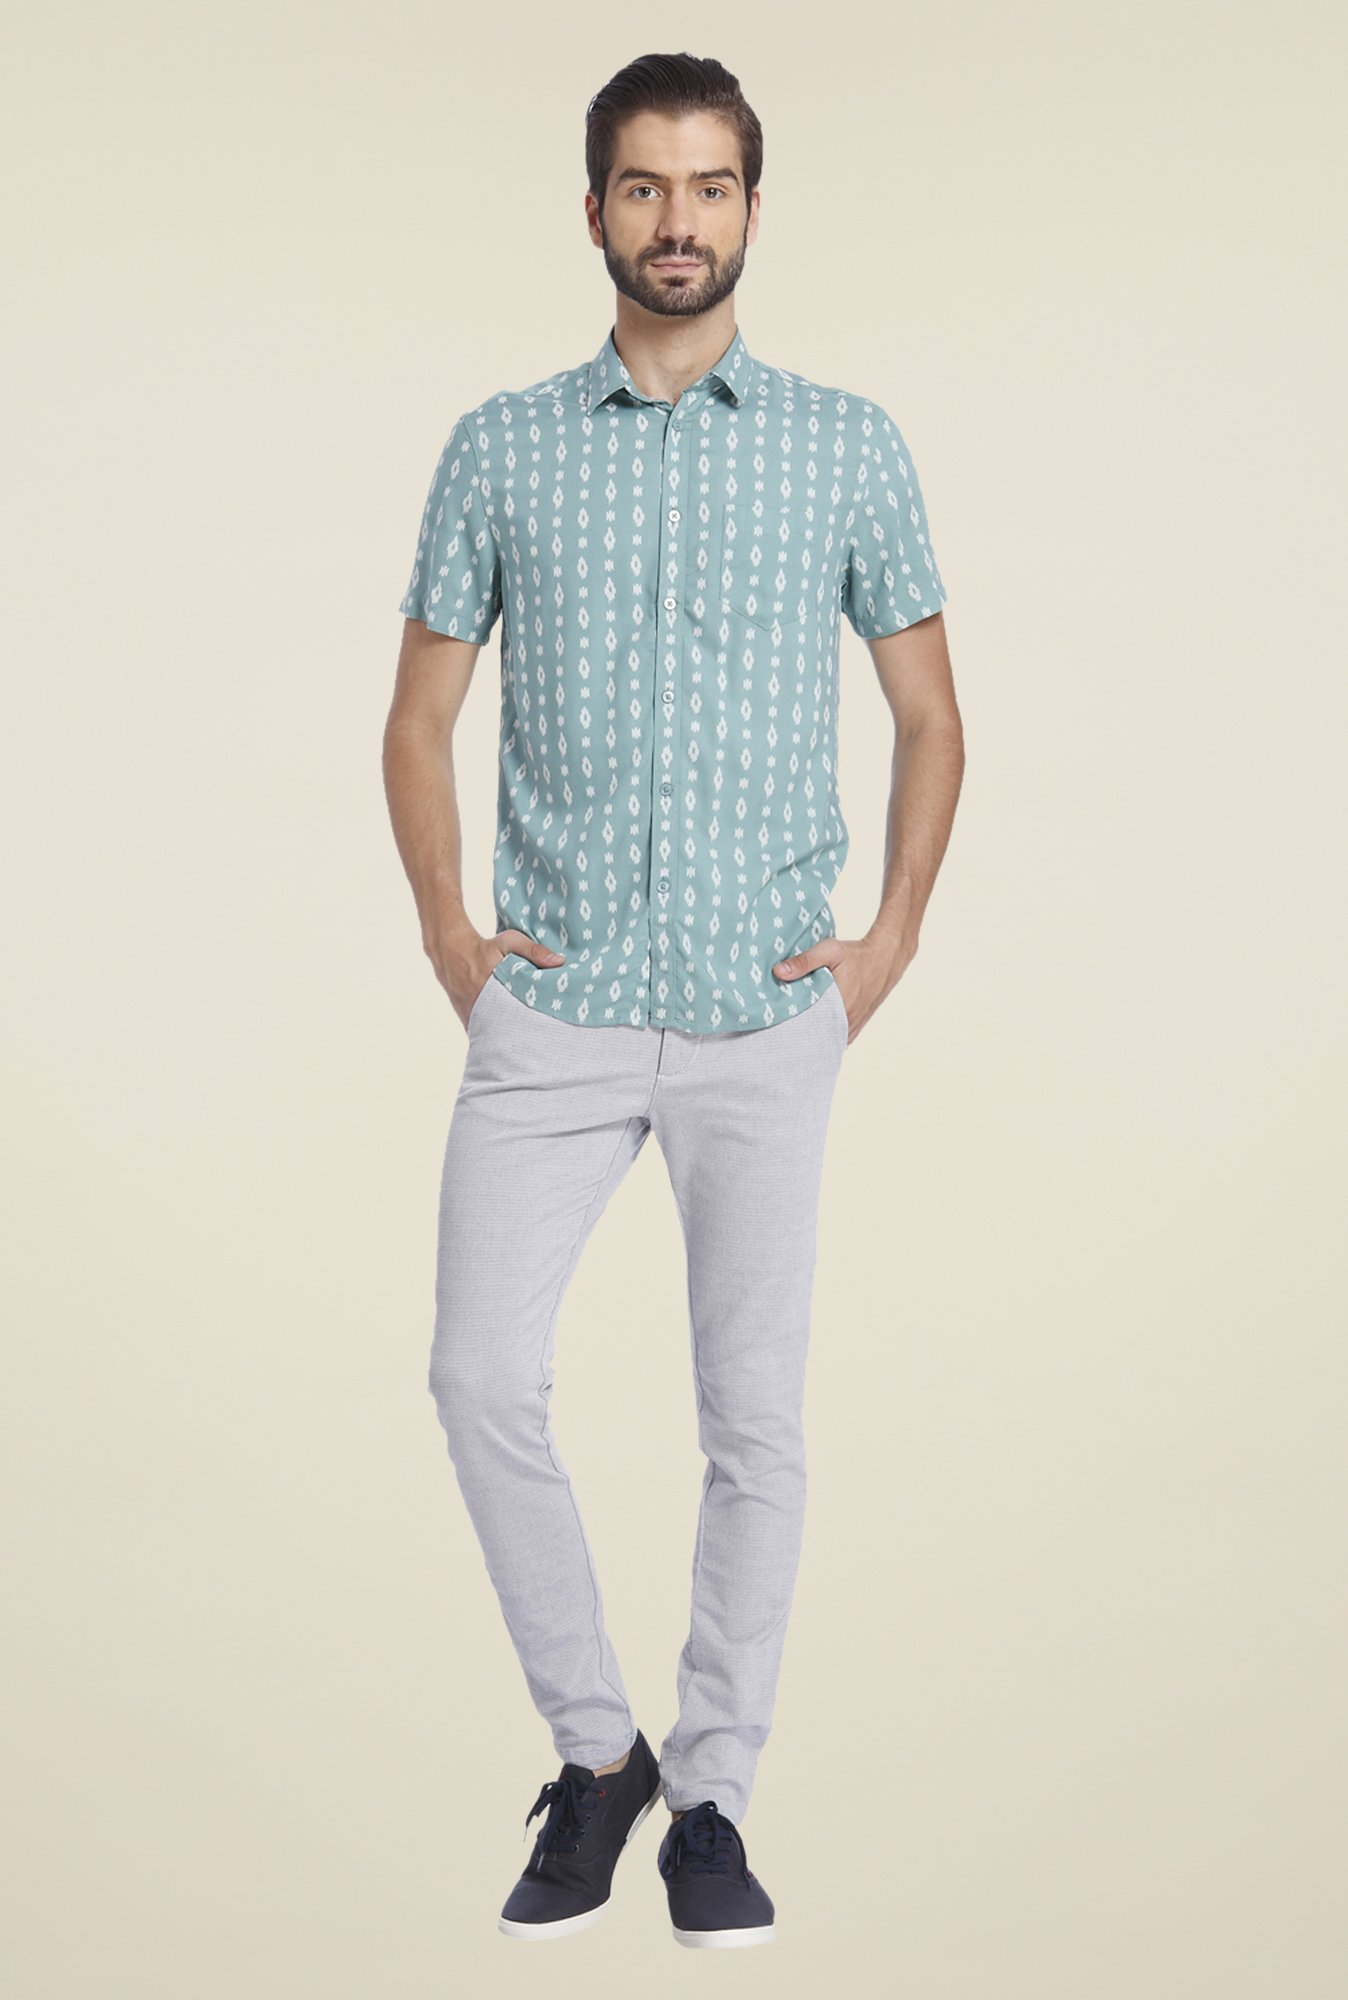 Jack & Jones Green Printed Shirt